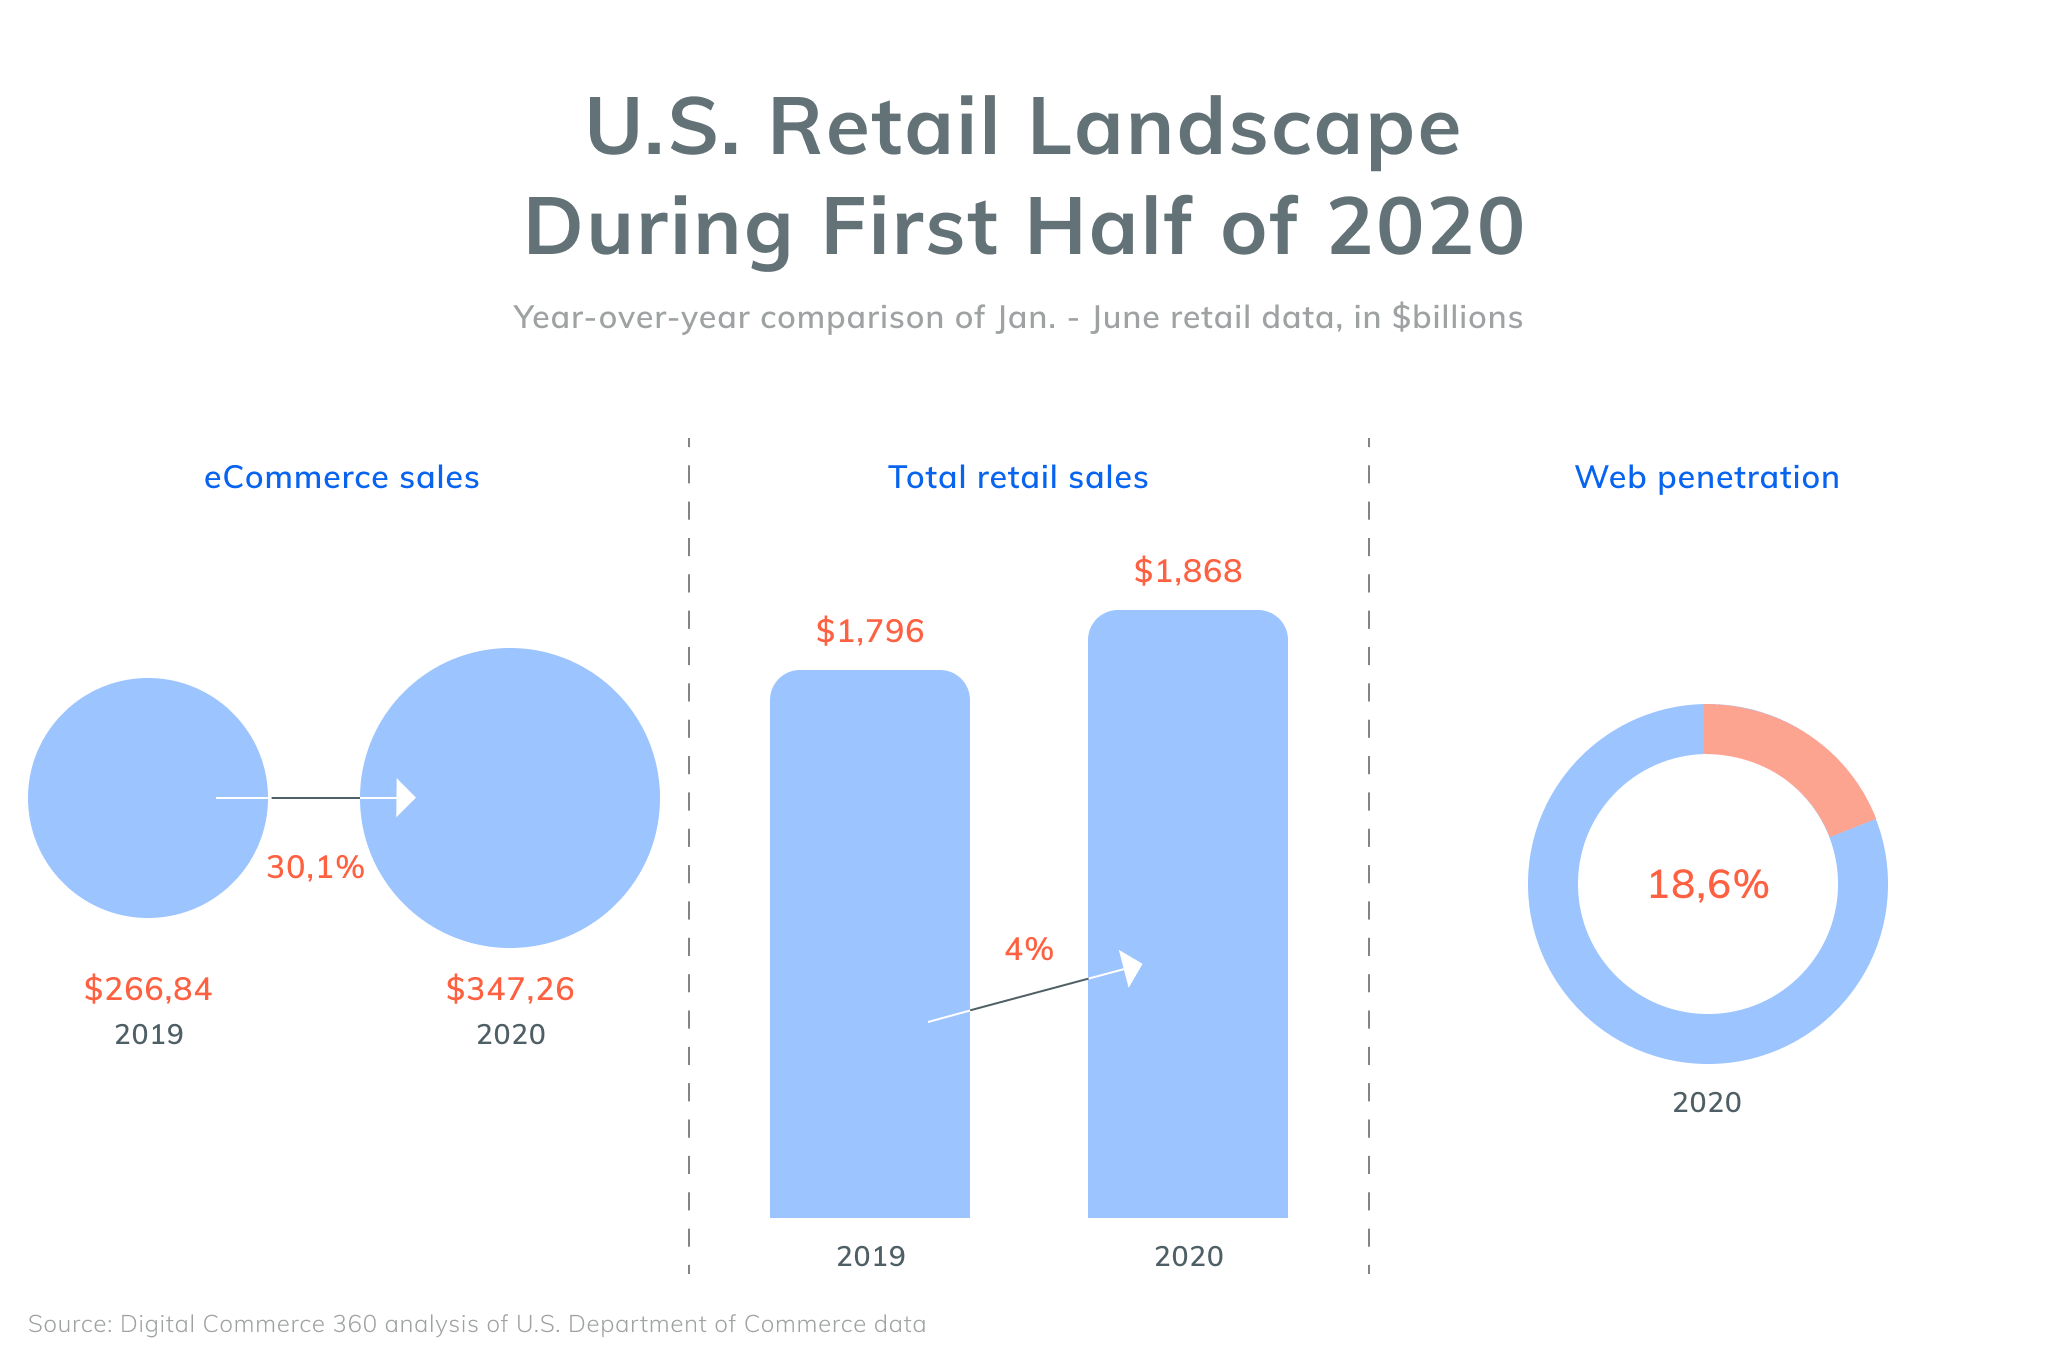 U.S. Retail Landscape During First Half of 2020